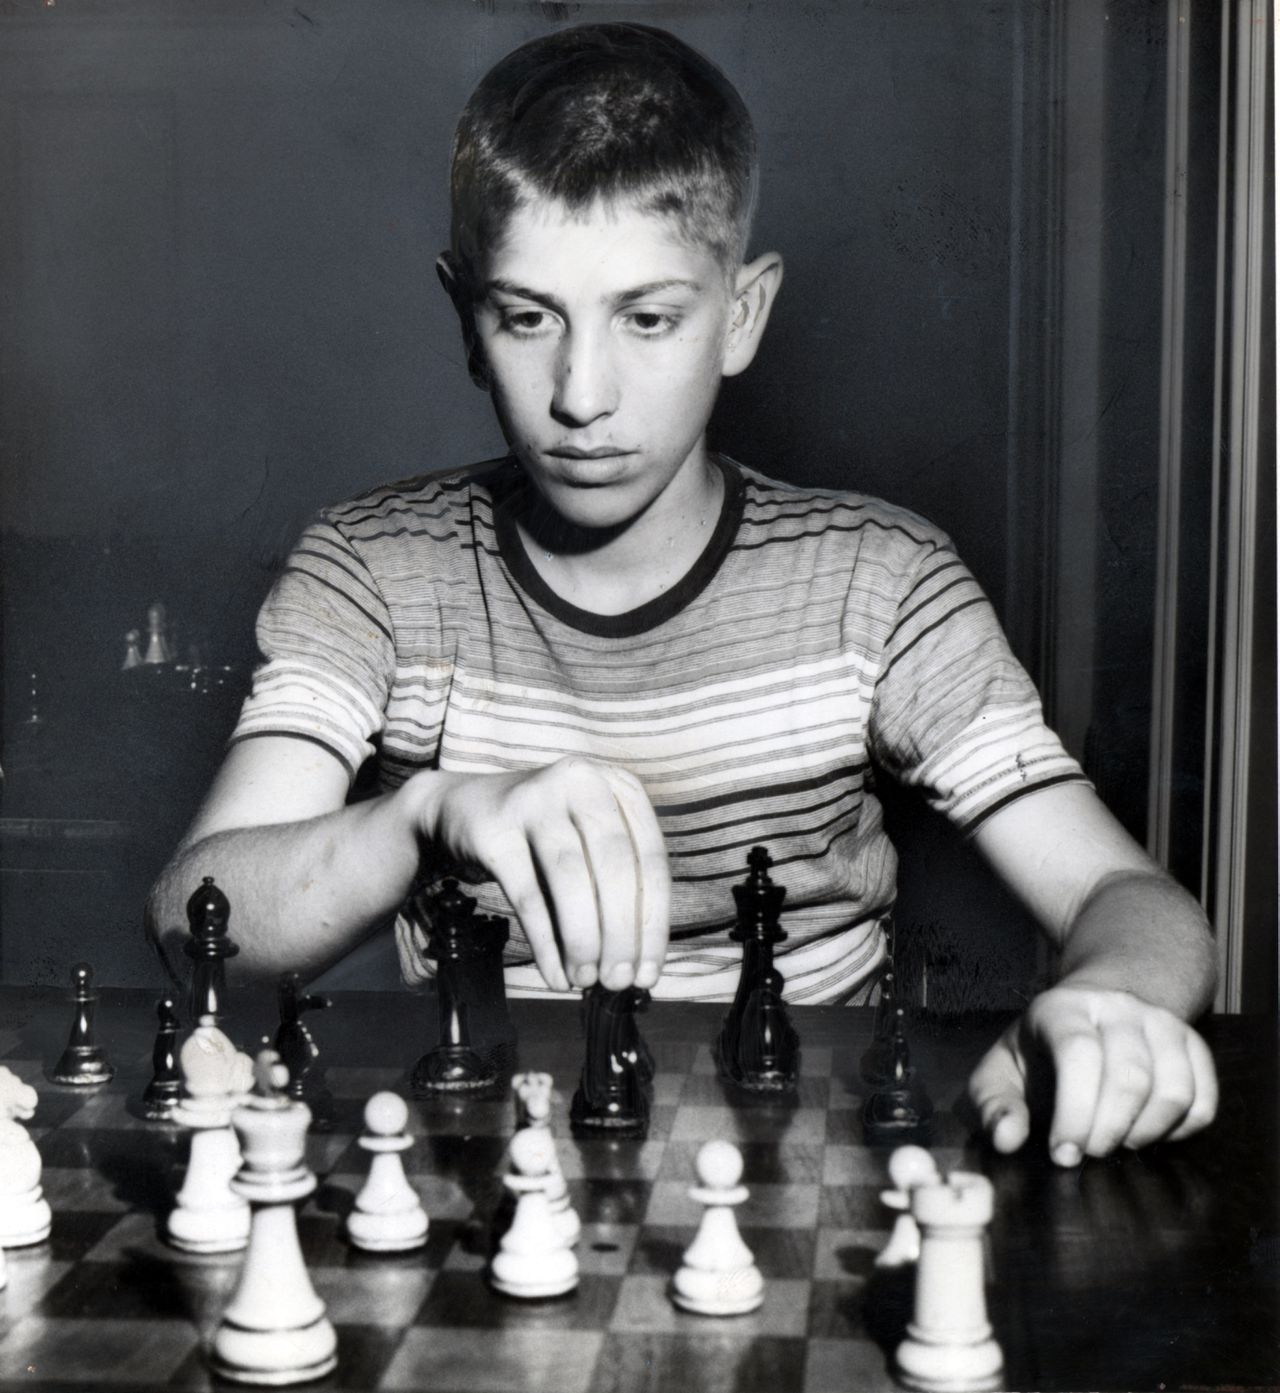 **FILE PHOTO** (NYT30) NEW YORK -- Jan. 18, 2008 -- OBIT-FISCHER -- Bobby Fischer, then 14, in New York in a June 19, 1957 photo. Fischer, the iconoclastic genius who was one of the greatest chess players the world has ever seen, died Thursday, Jan. 17, 2008, in ReykjavÔø?k, Iceland. He was 64. (Robert Walker/The New York Times)